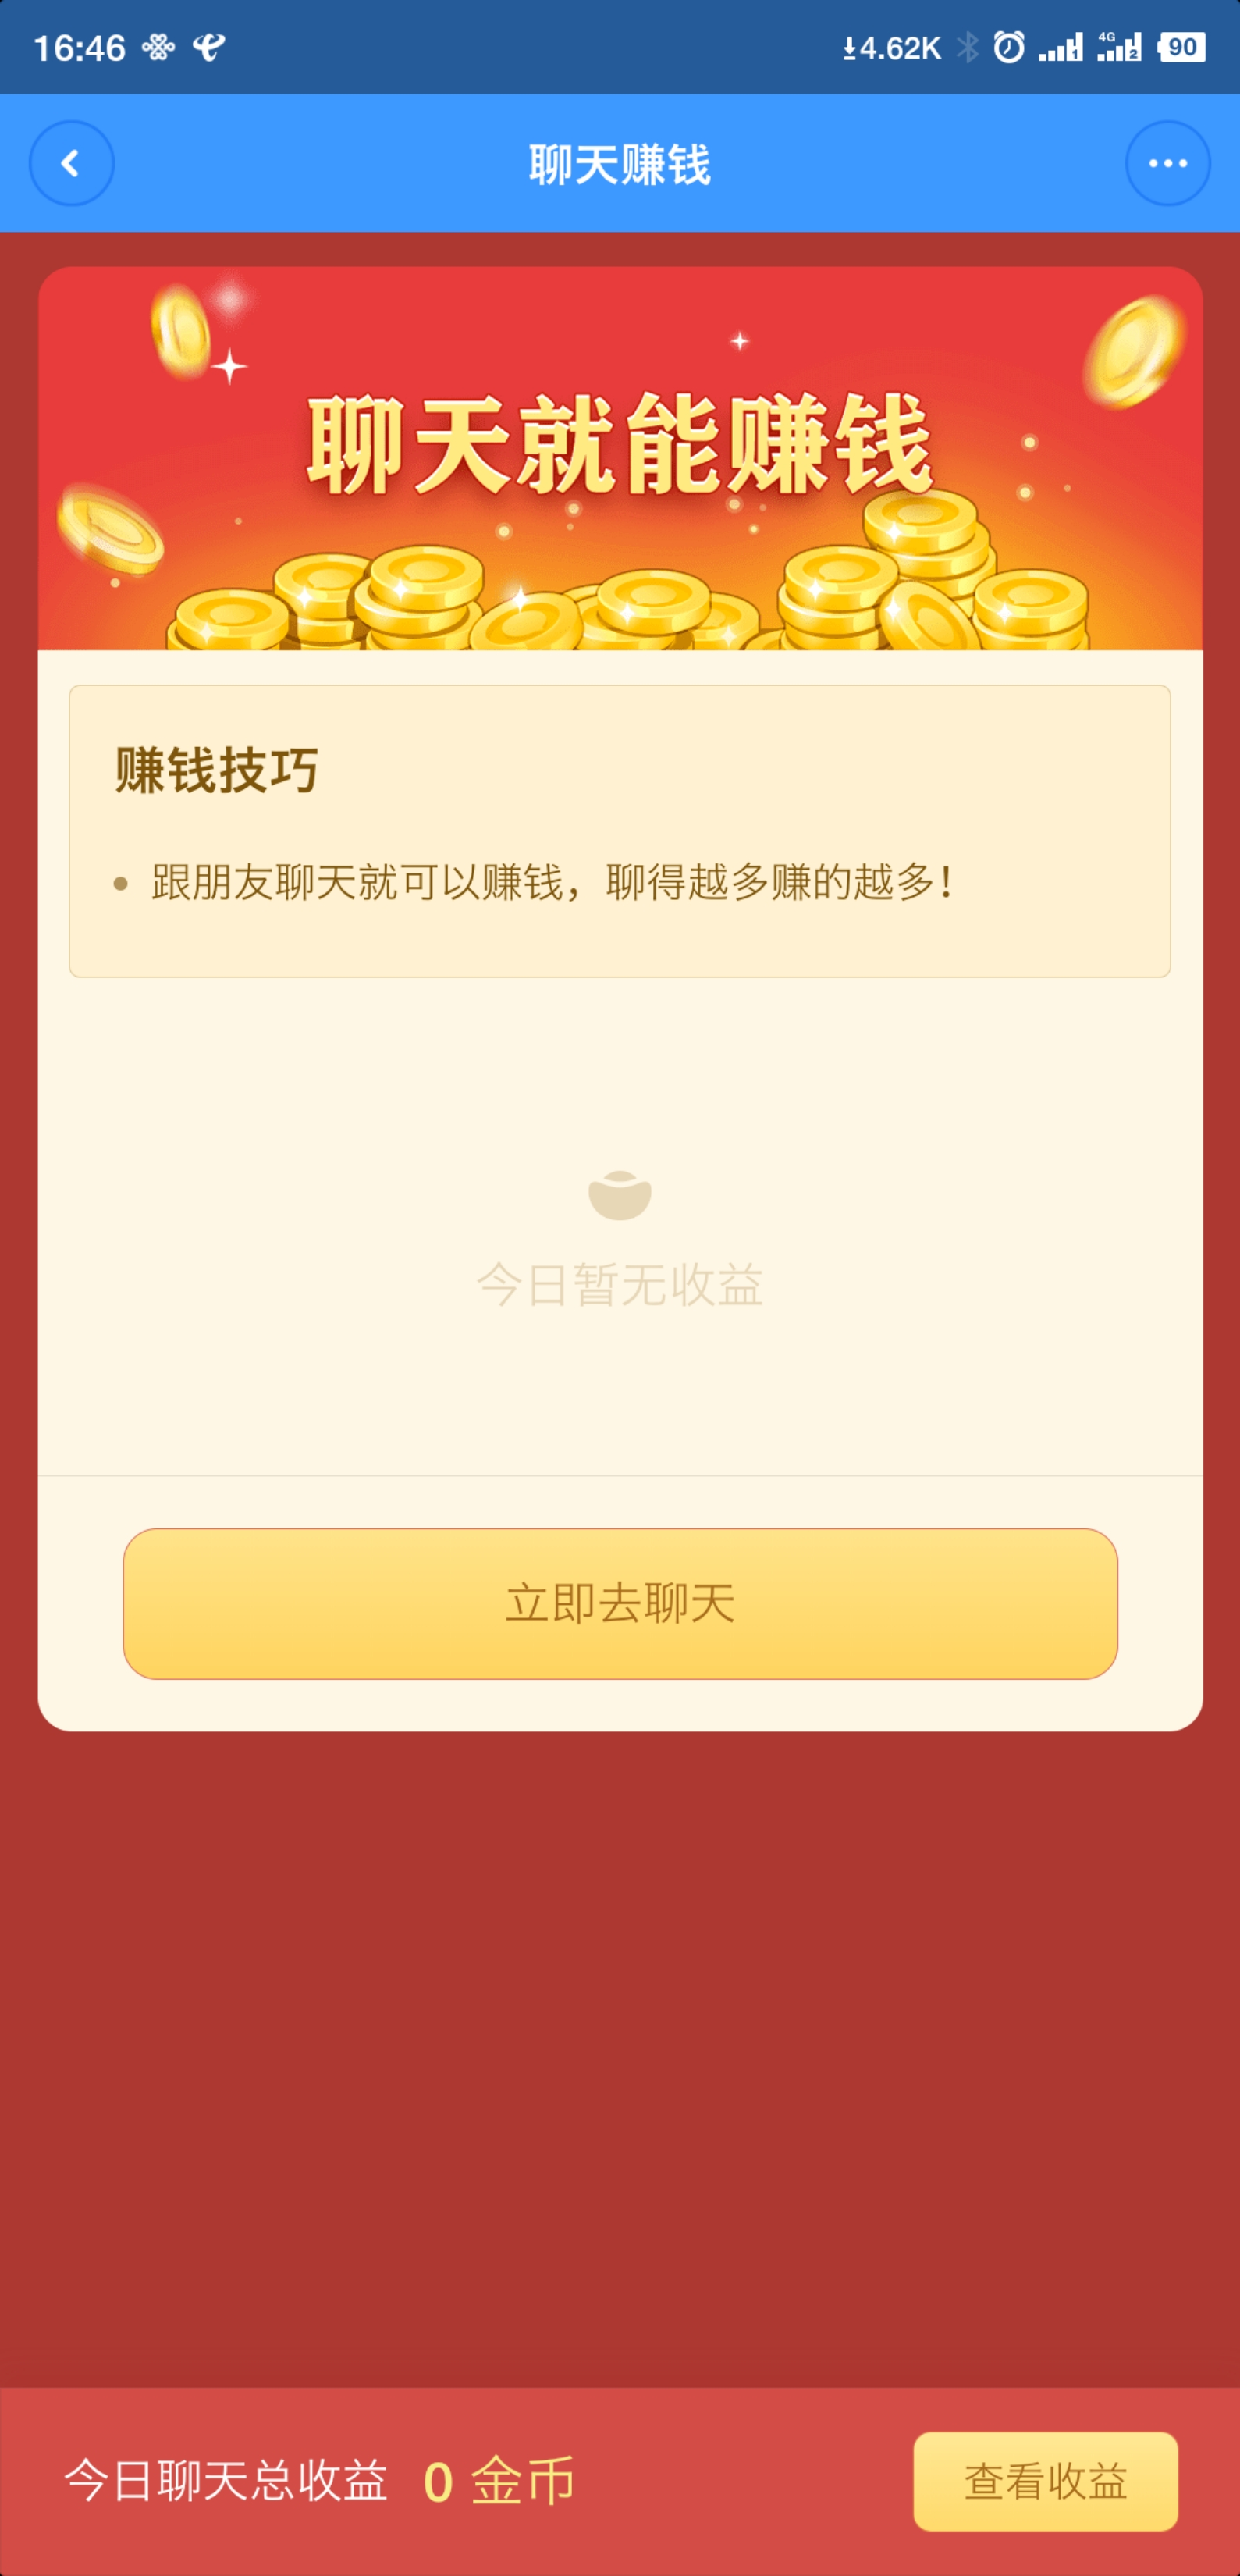 Screenshot_2019-01-11-16-46-29-982_???.png